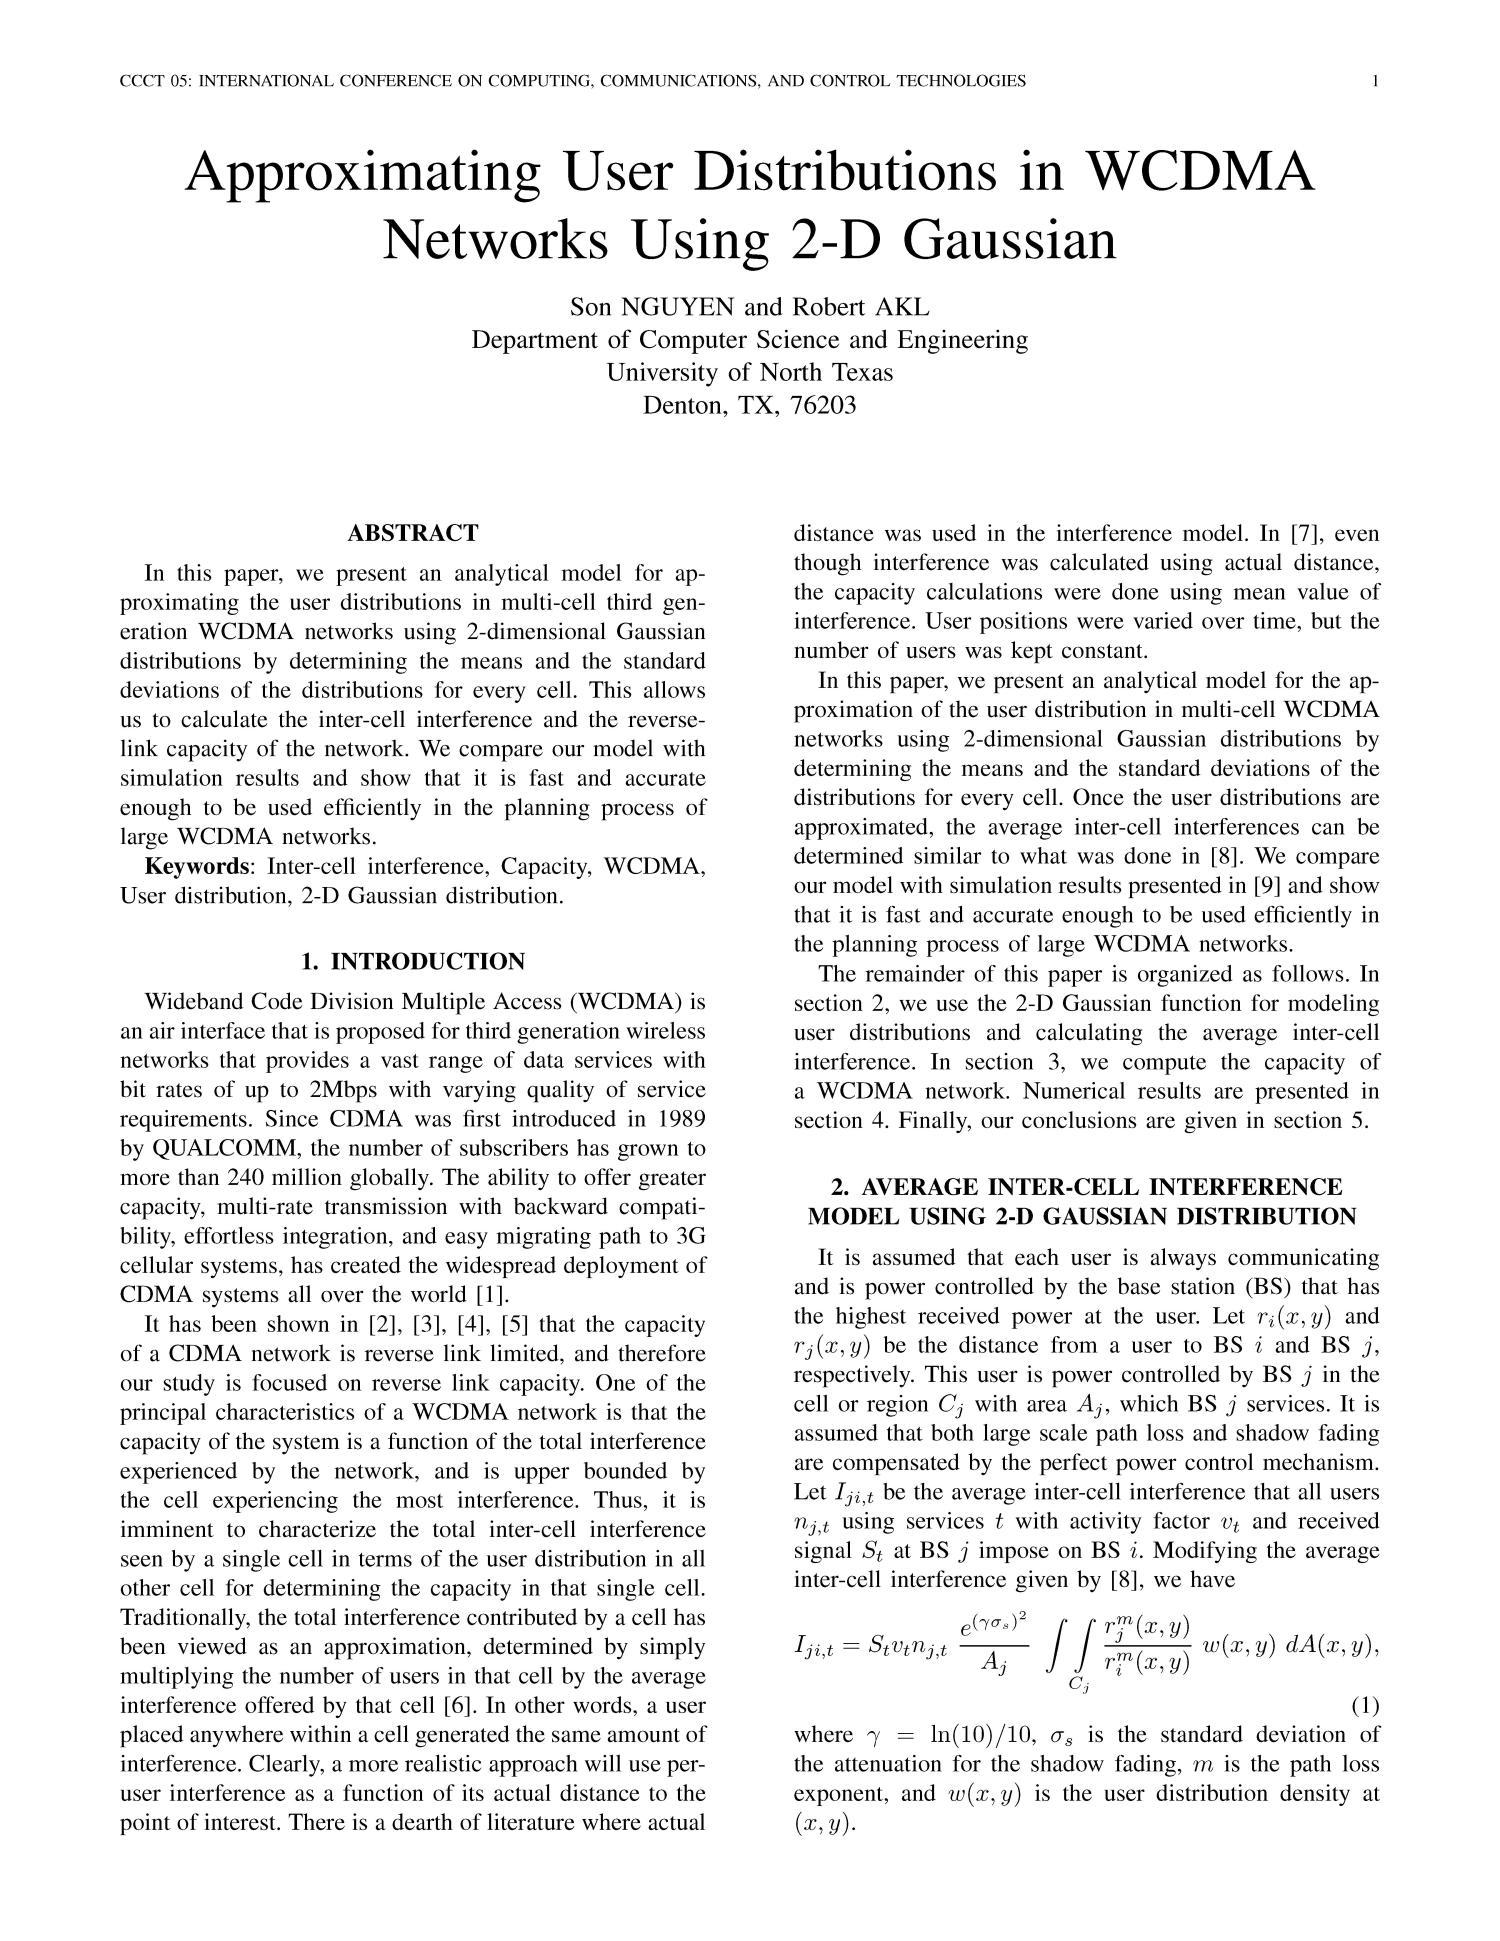 Approximating User Distributions in WCDMA Networks Using 2-D Gaussian                                                                                                      1